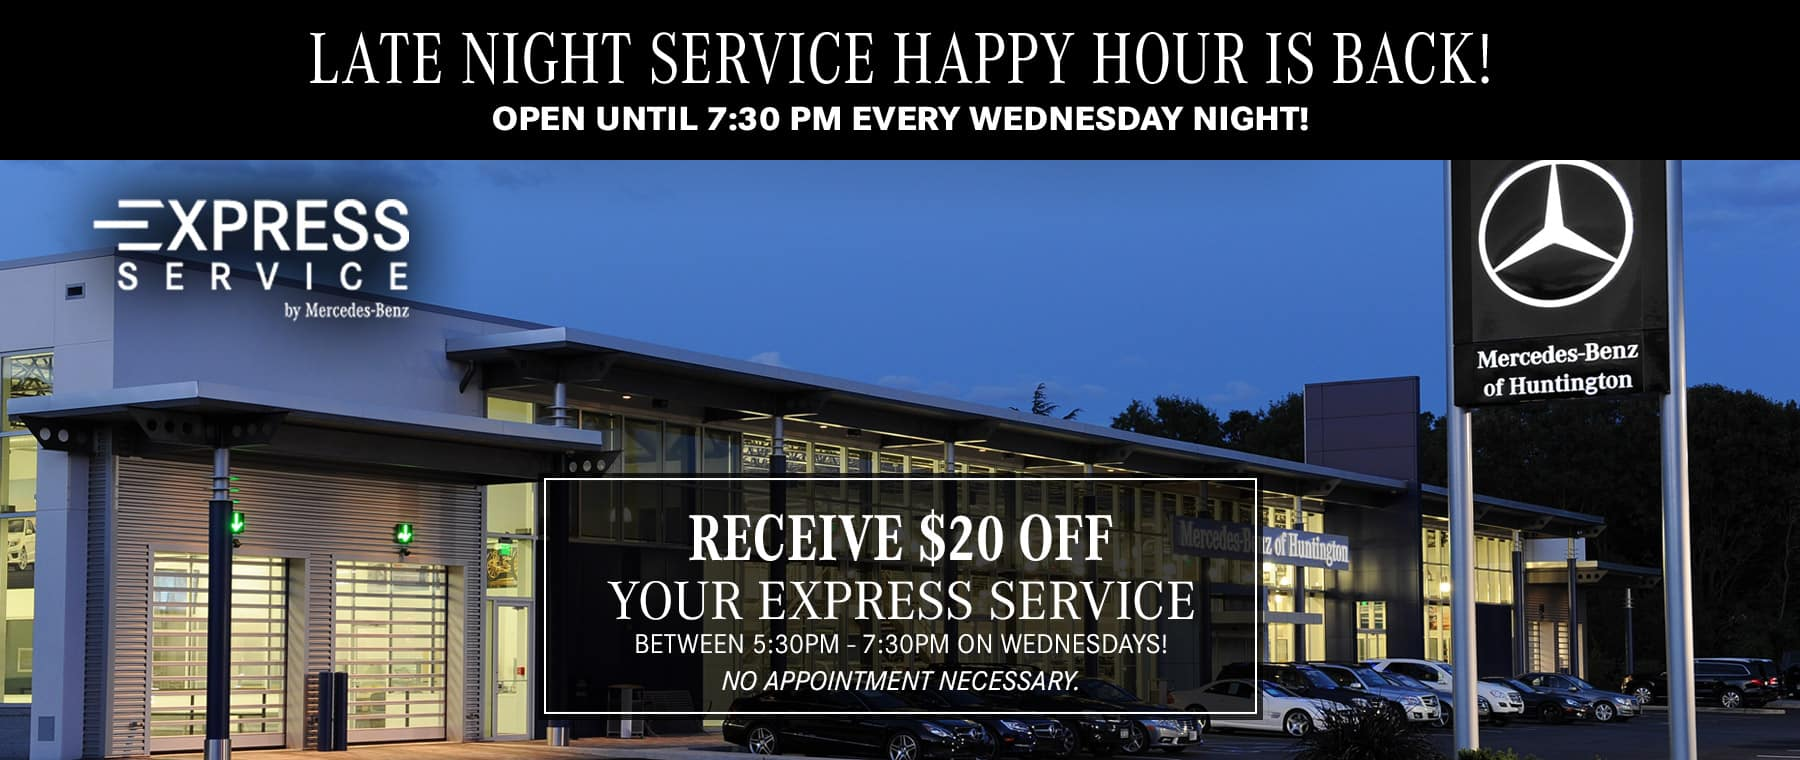 Homepage-Slider-MBH-Late-Night-Happy-Hour